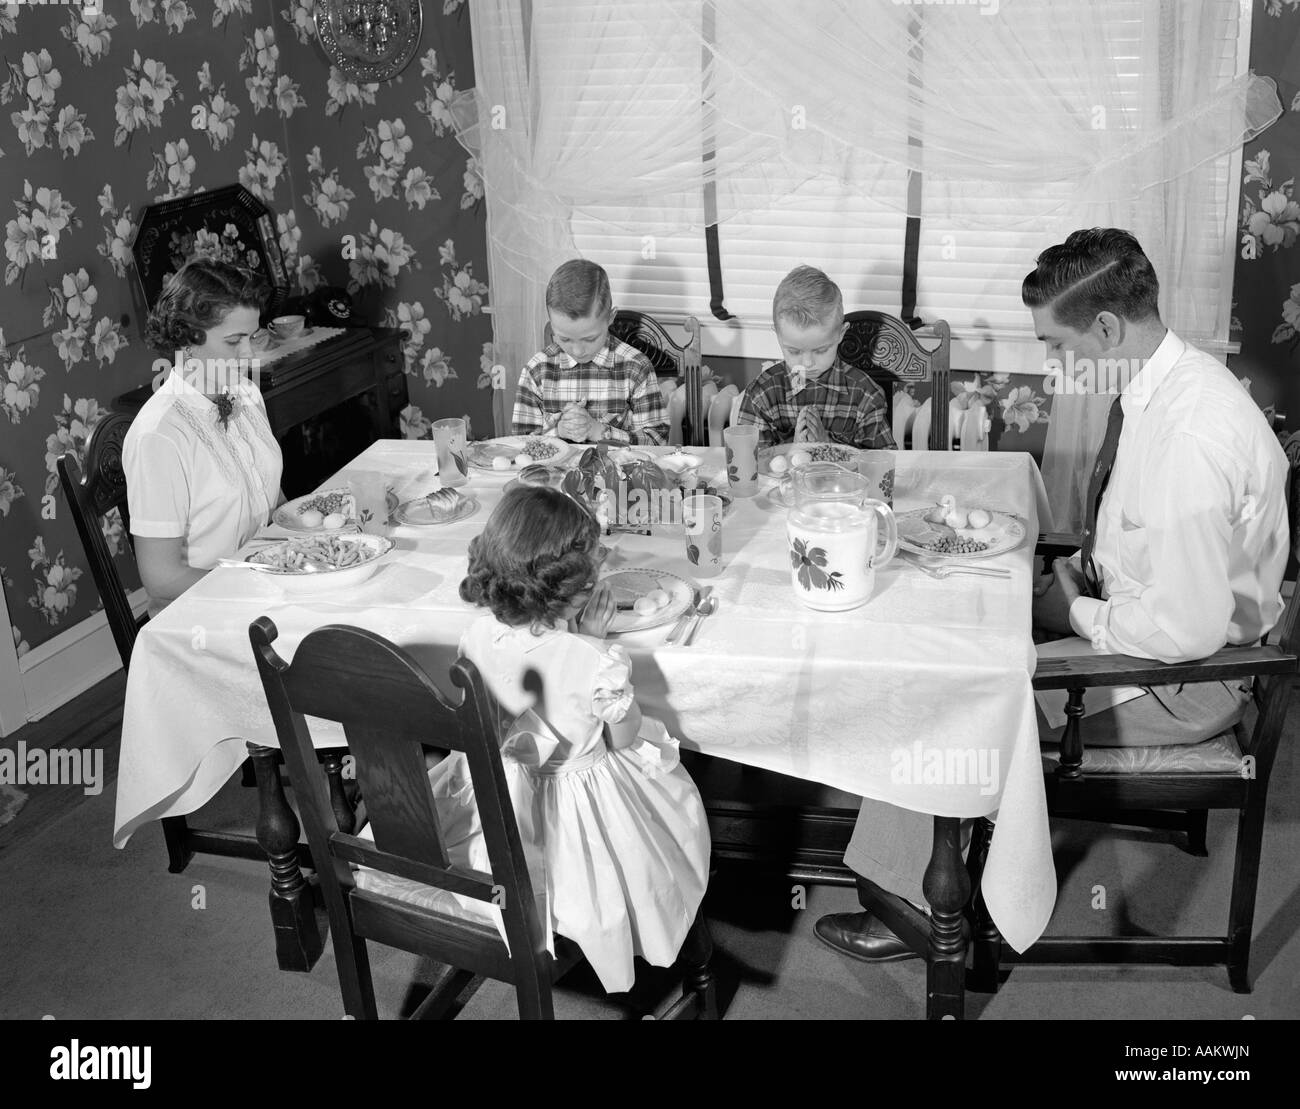 1950s Dining Room Furniture 1950s Family Of 5 Mom Dad 3 Kids Sitting At Dining Room Table